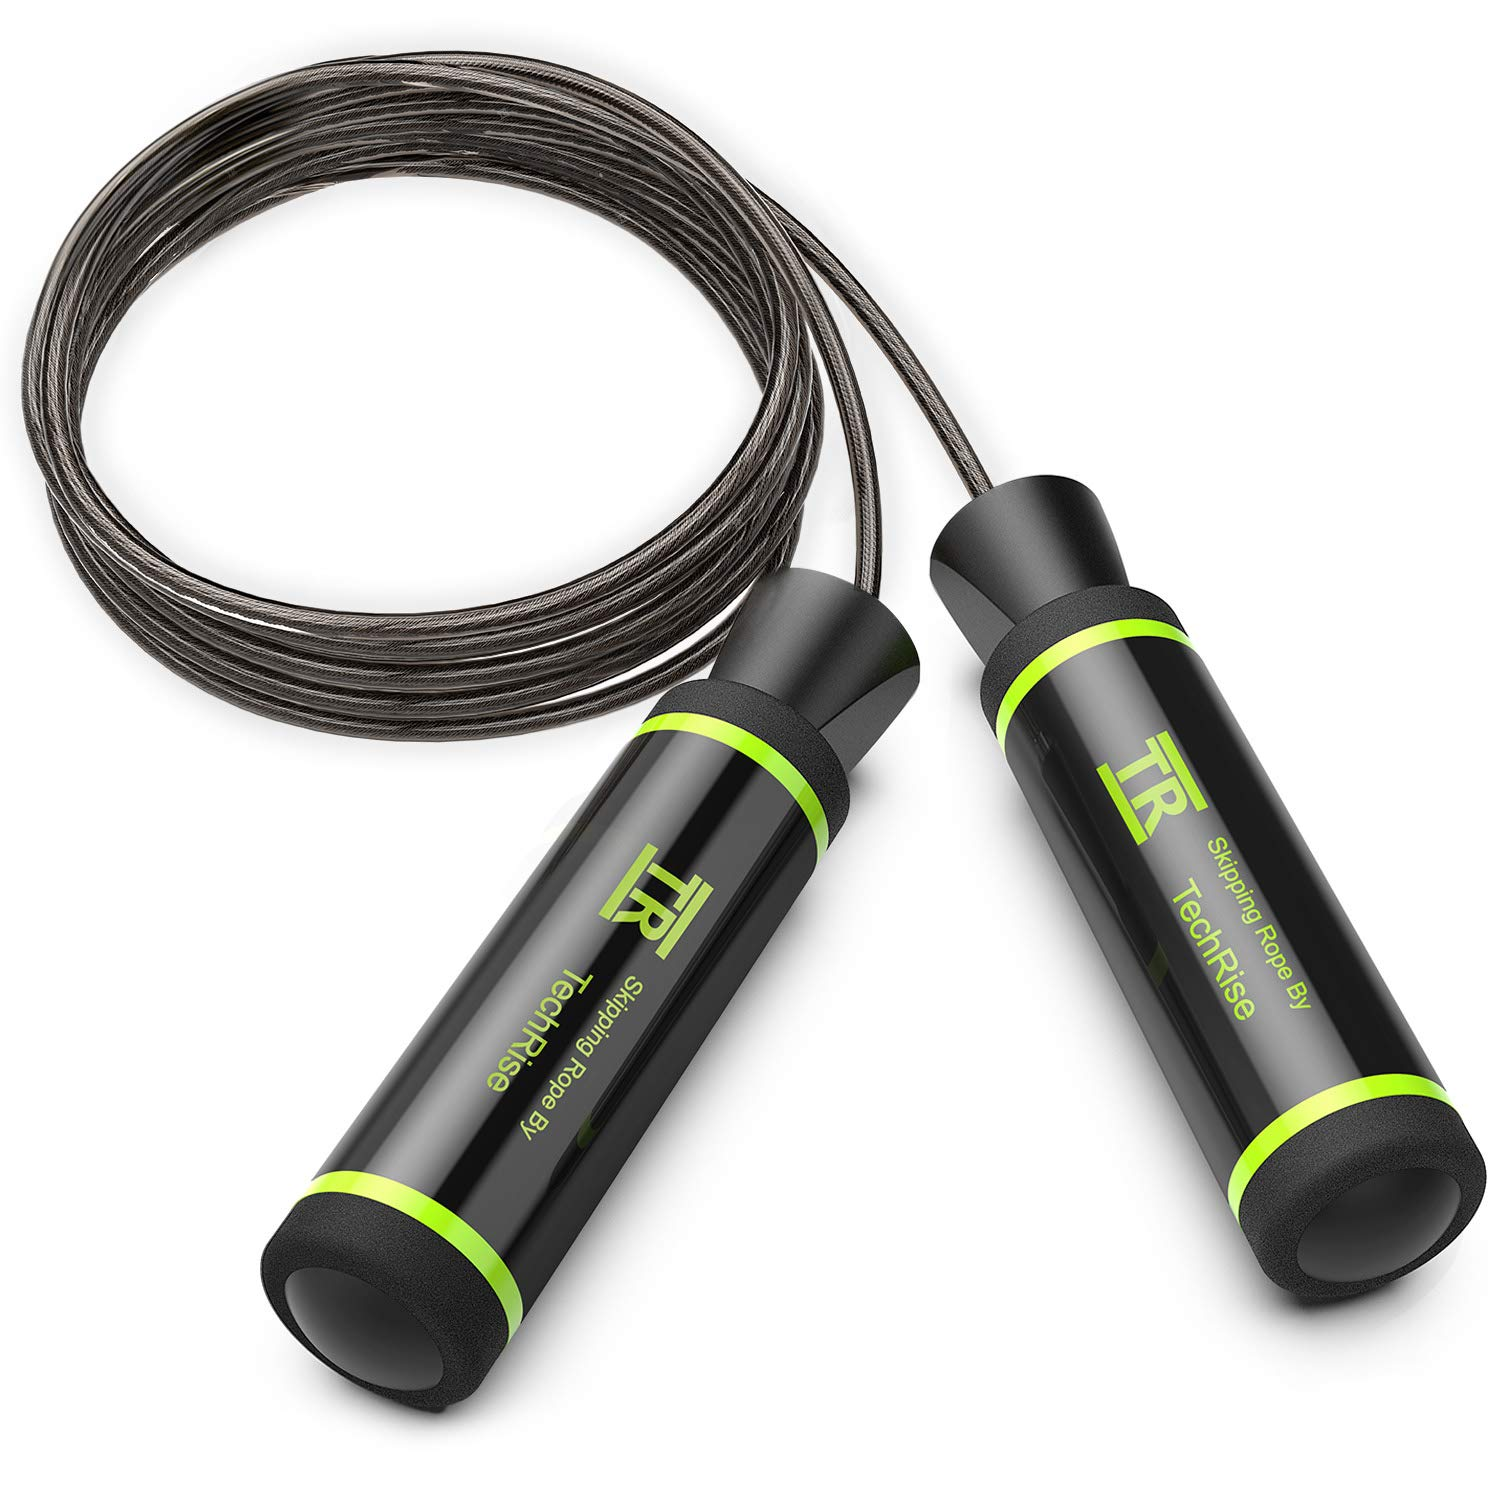 TechRise Skipping Rope, Speed Skipping Jump Jumping Rope with Skin-friendly Handle and Adjustable Soft Steel Wire Inside Rope for Fitness Workouts Fat Burning Exercises and Boxing 621632